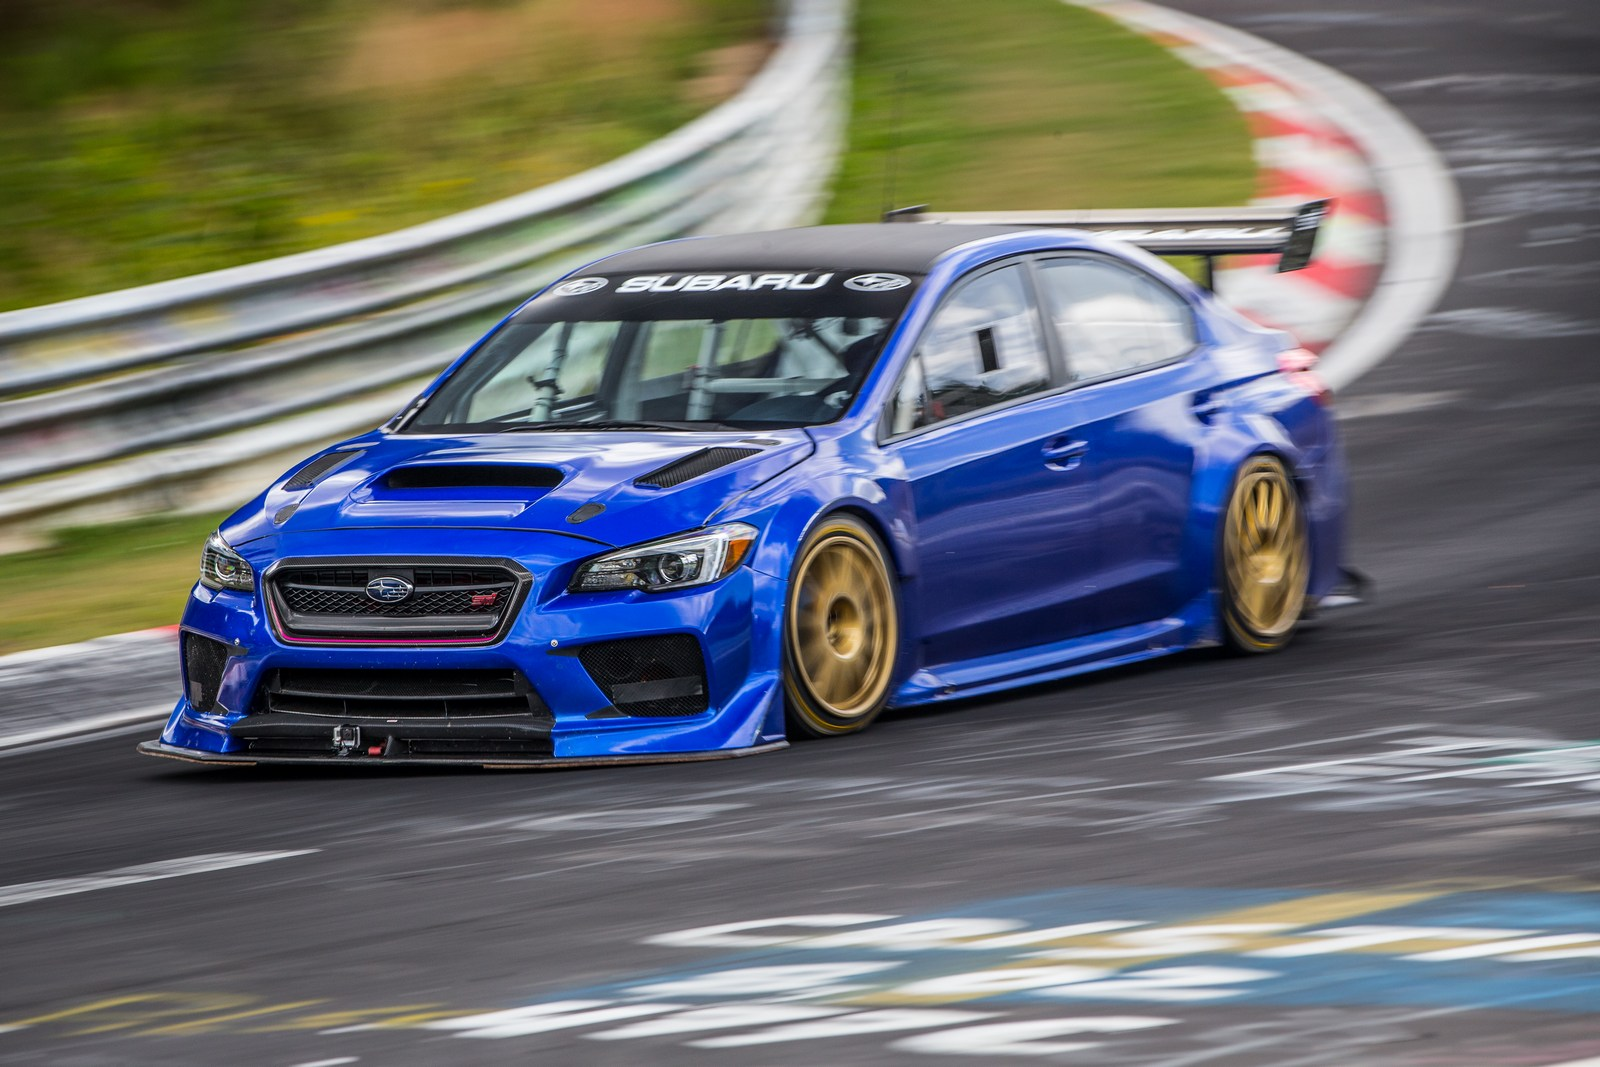 Subaru Sets A New Nurburgring Lap Record For Four Door Sedans